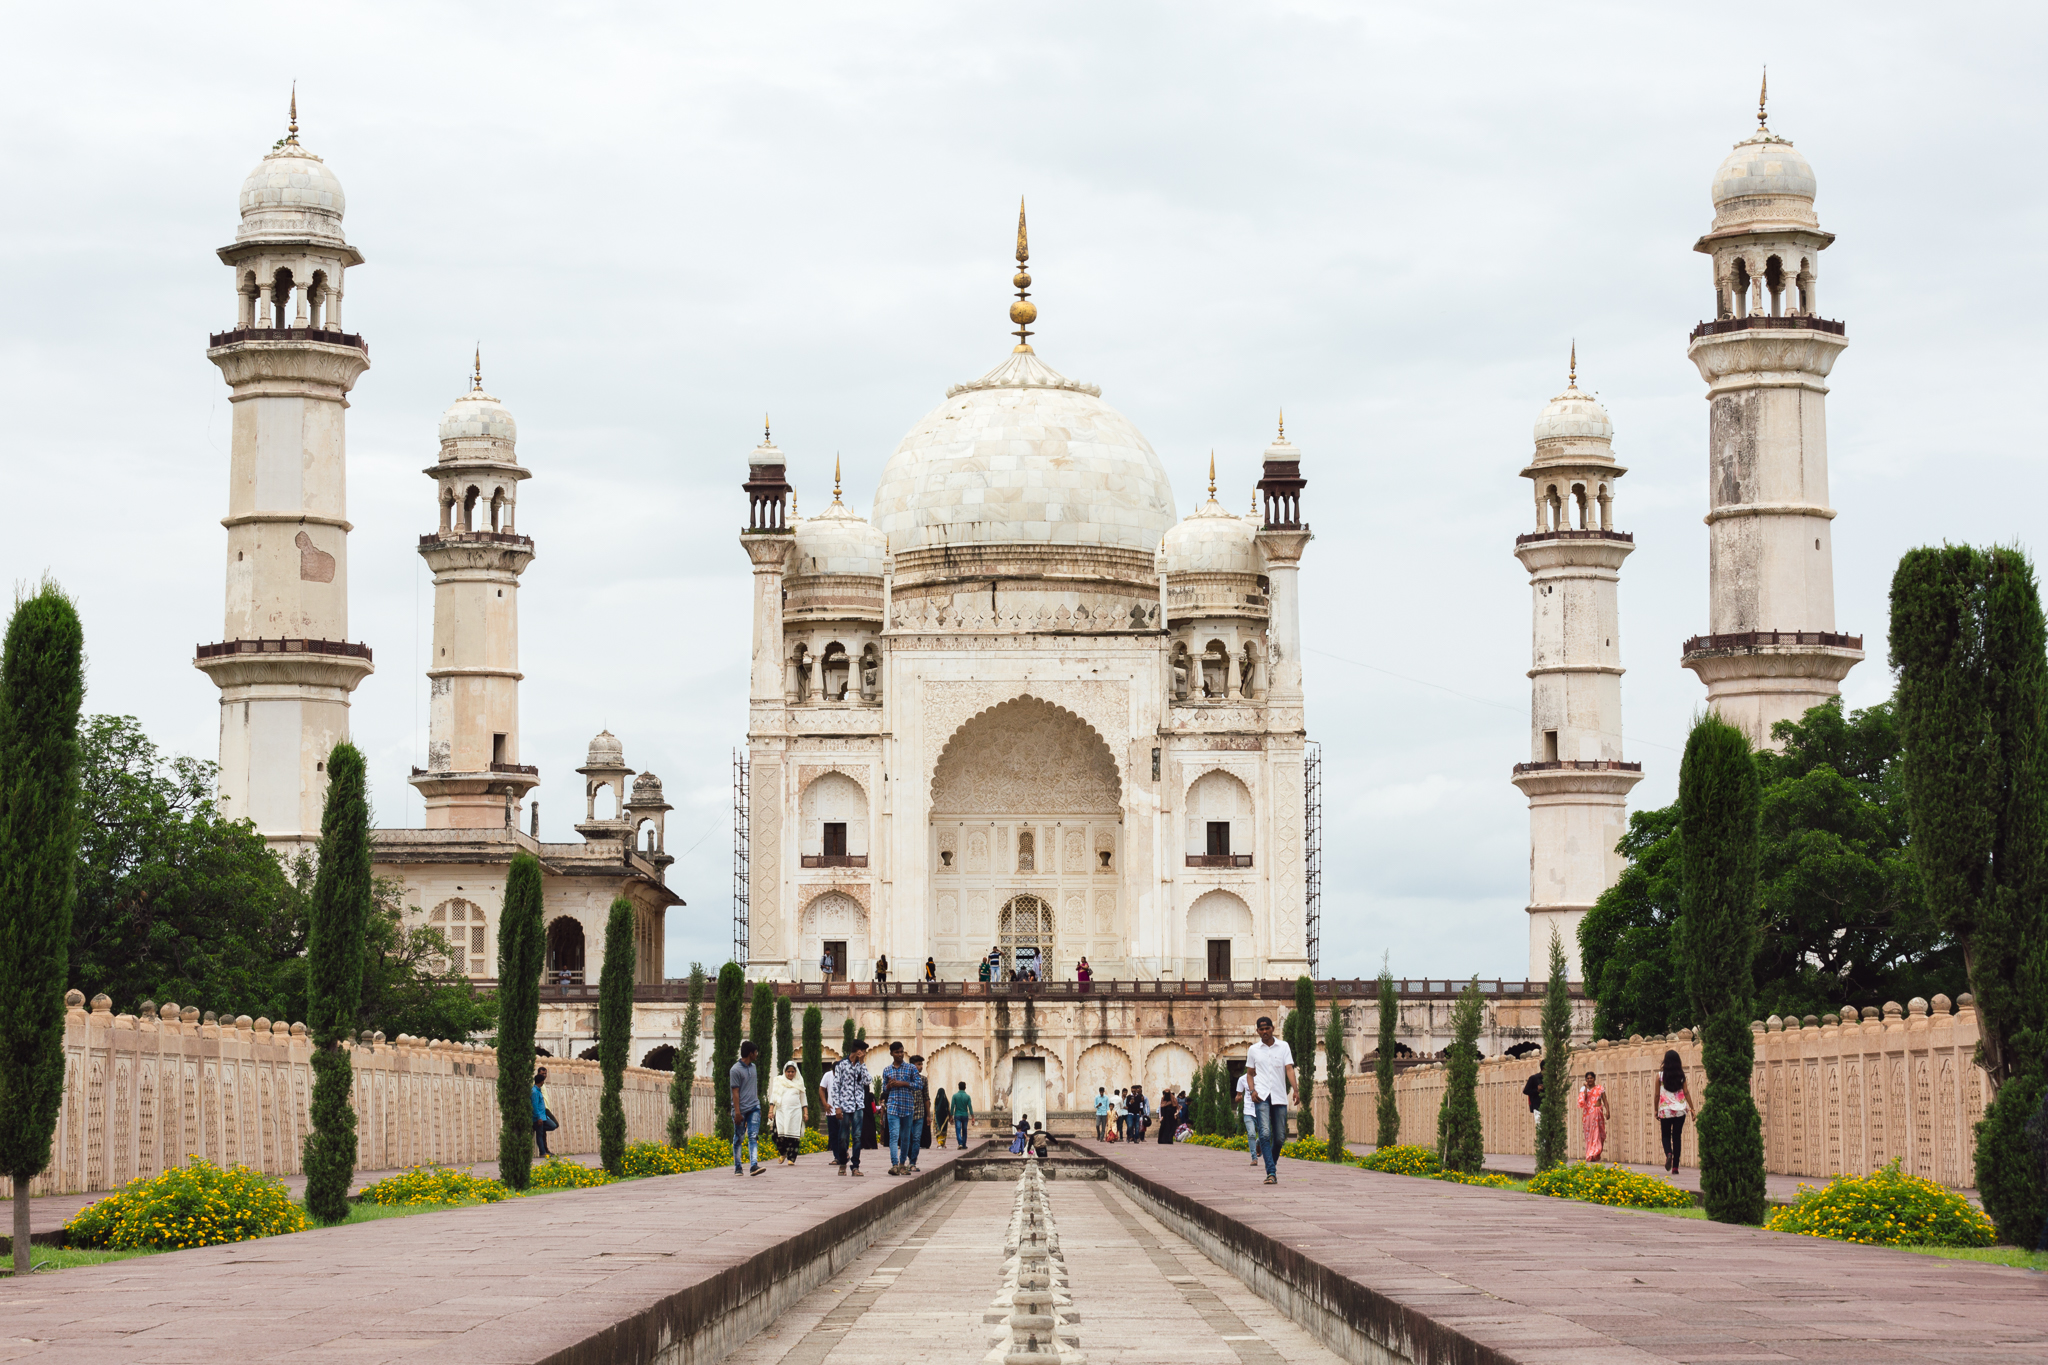 This was a replica of the Taj Majal made from stone rather than marble built by a prince for his wife.